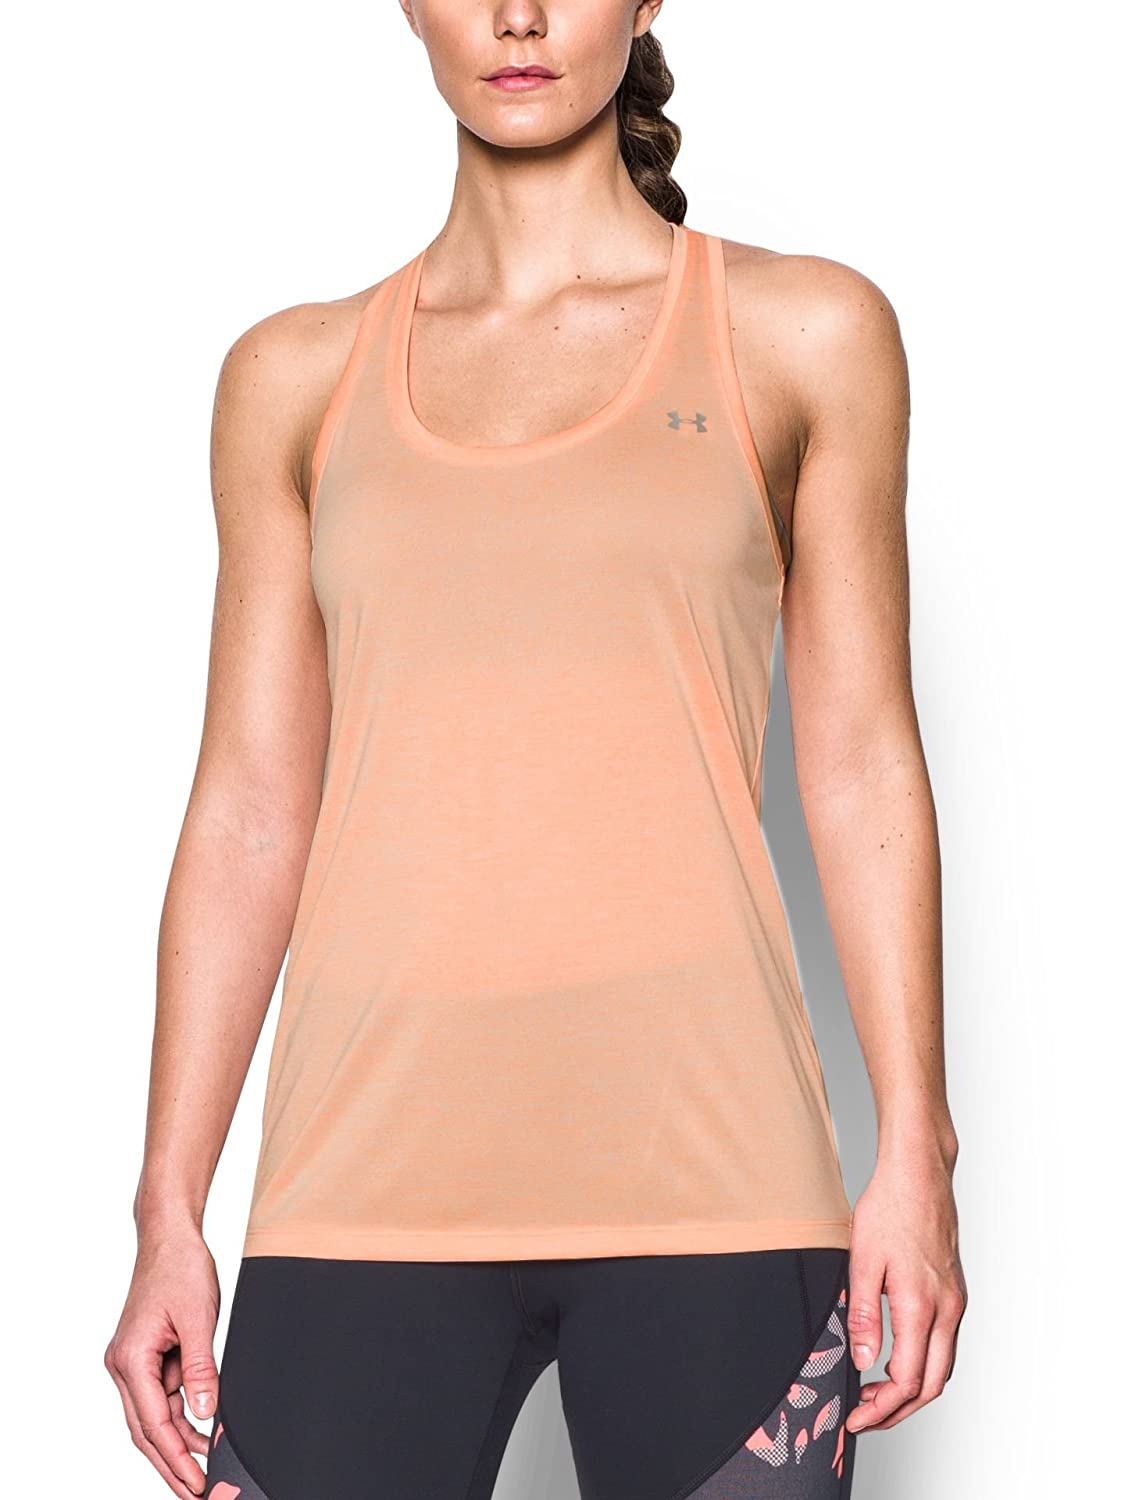 TALLA S-M. Under Armour Tech Tank Twist - Camiseta Deportiva de Tirantes Mujer